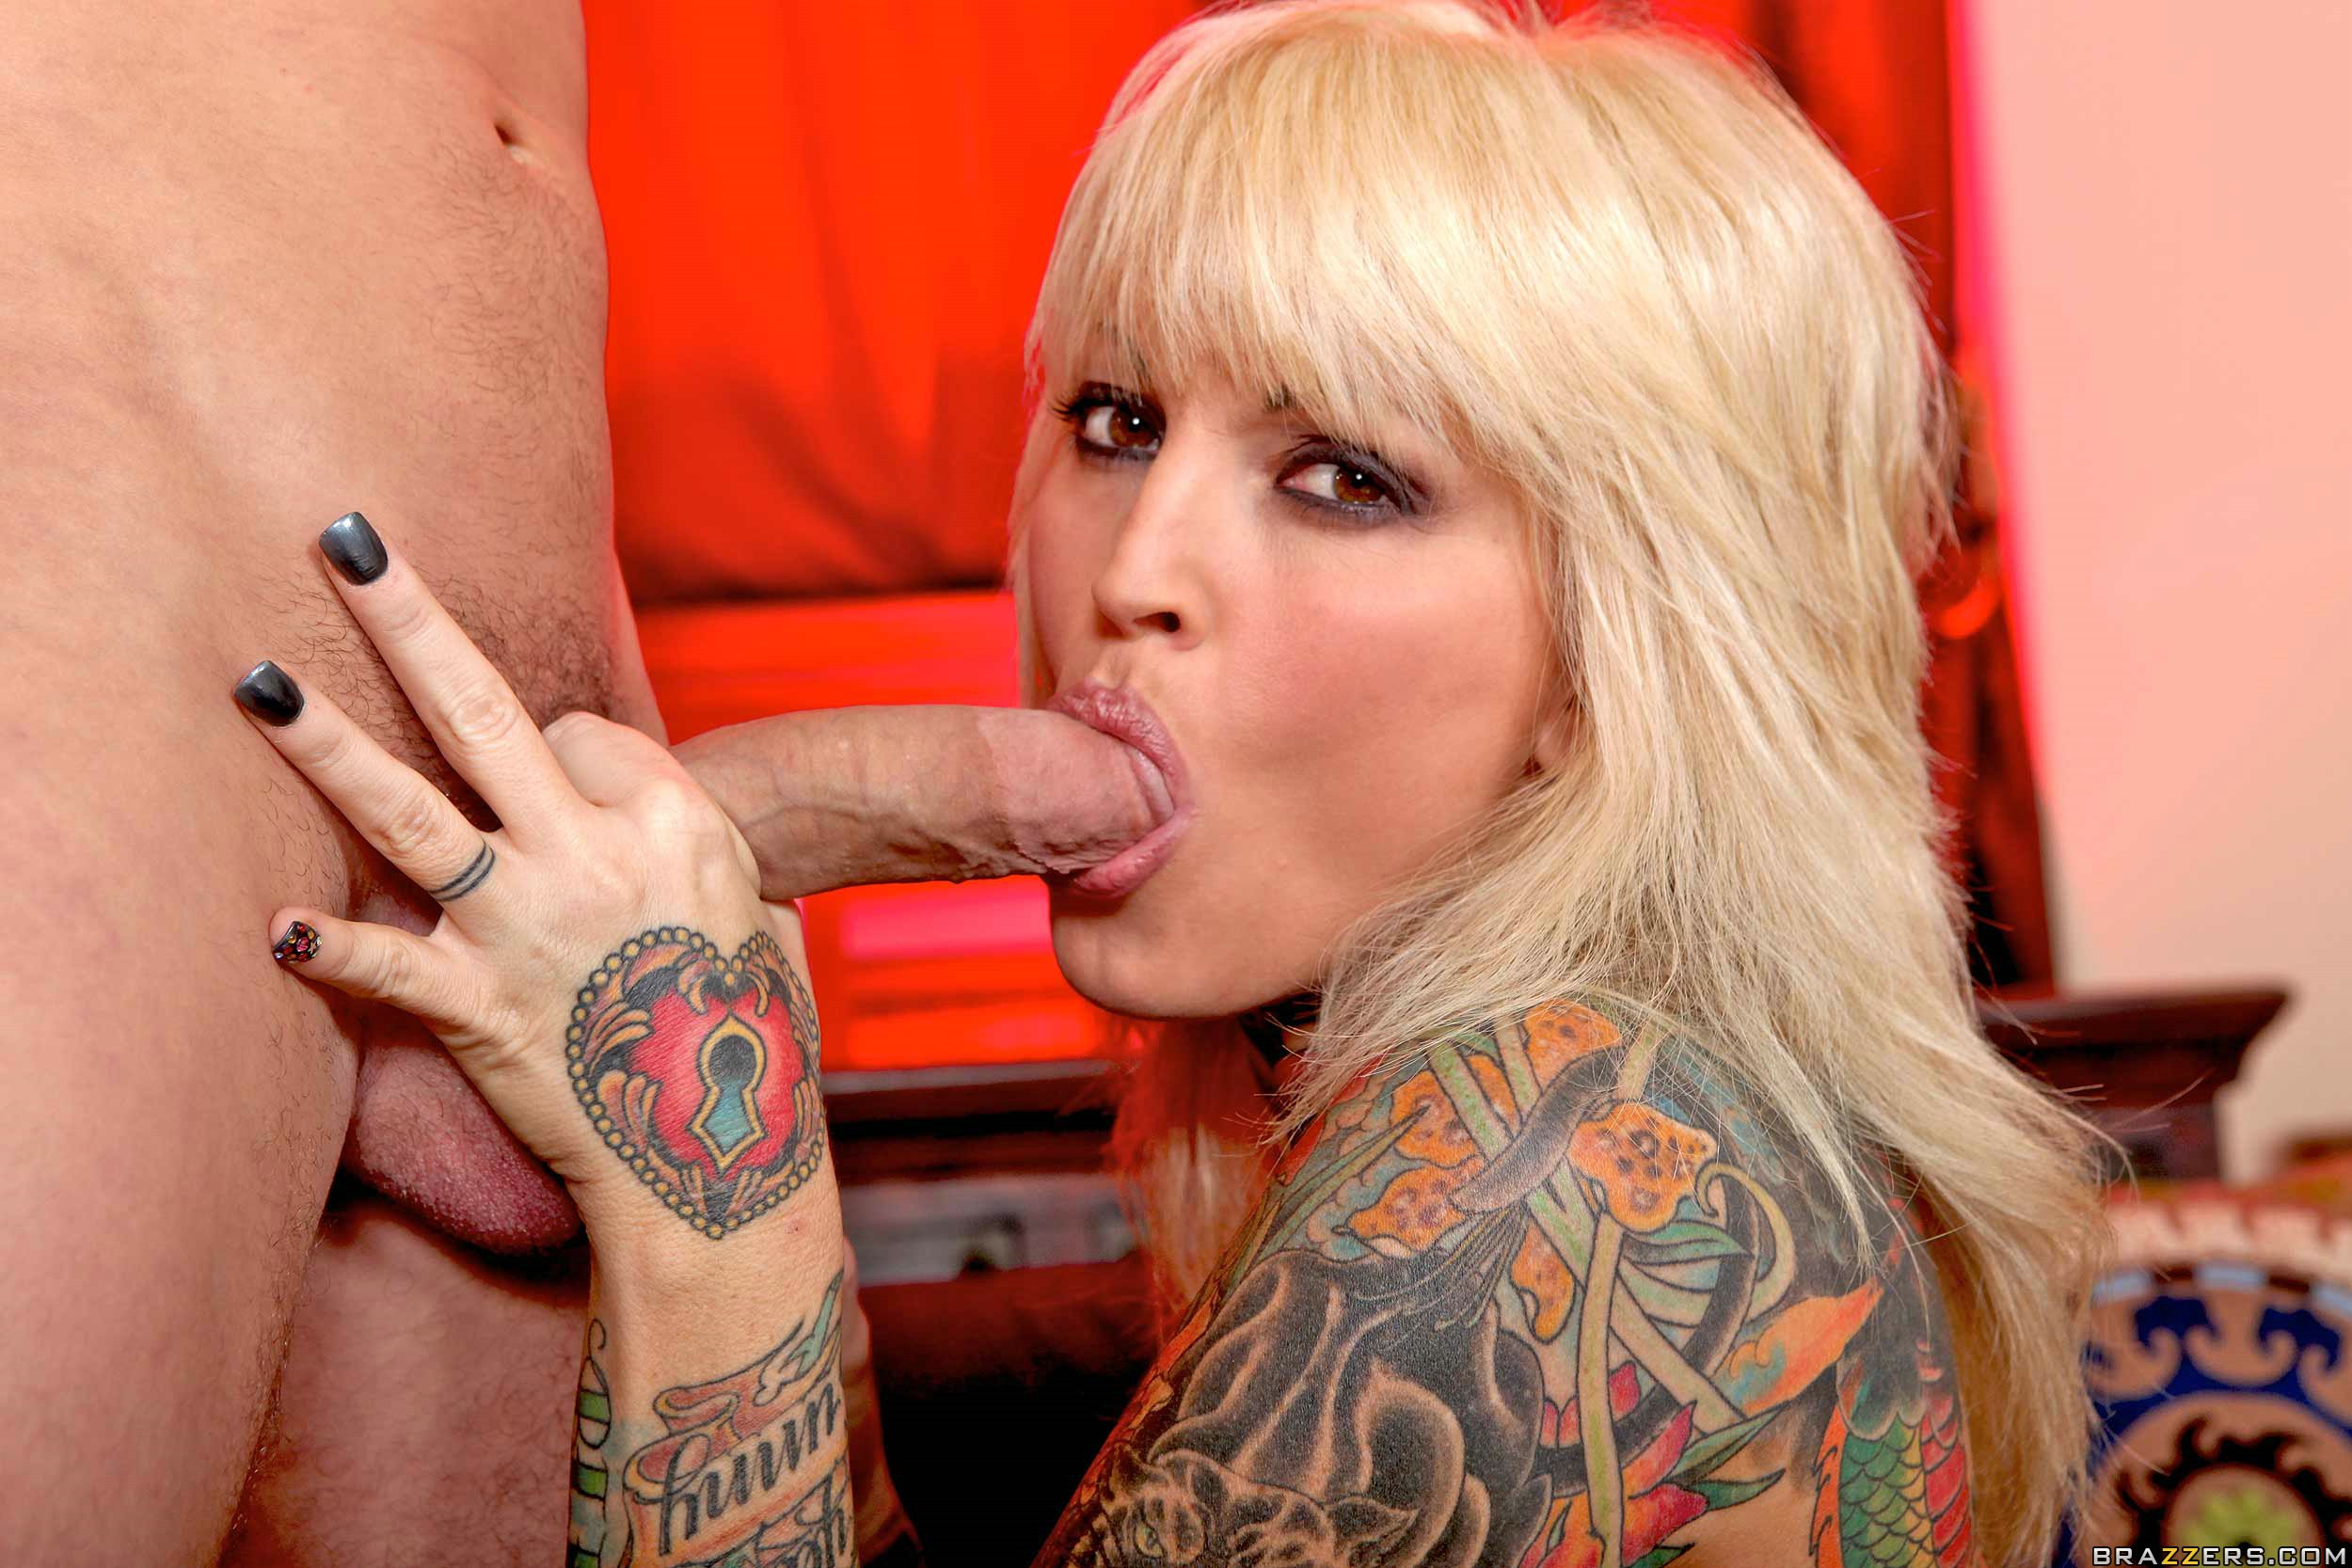 Sorry, janine lind blowjob agree, useful